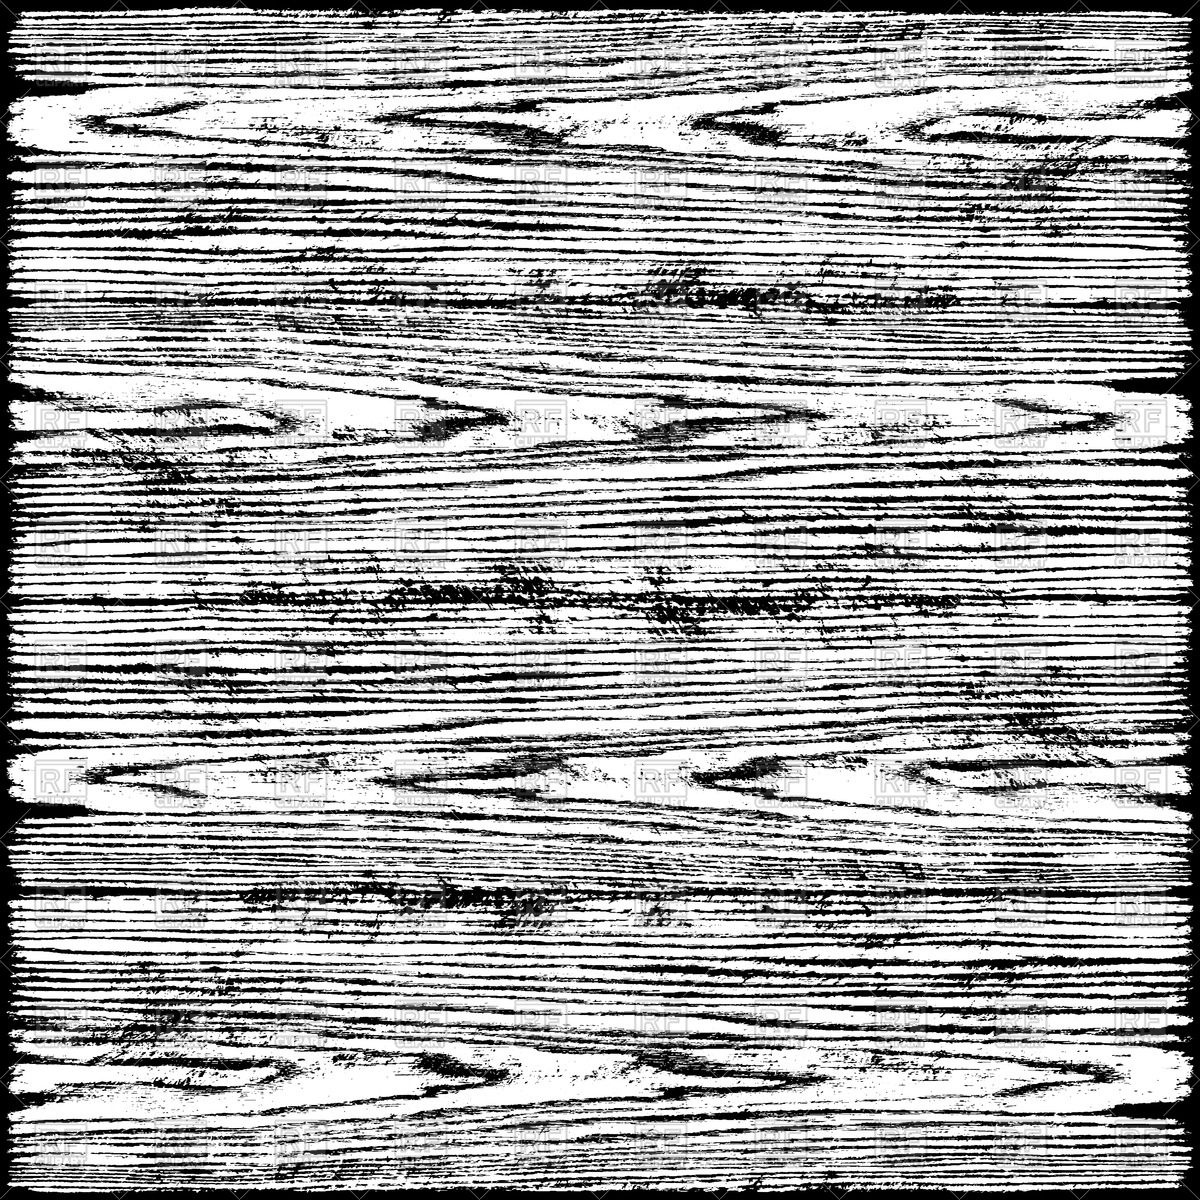 Texture Clipart Black And White.